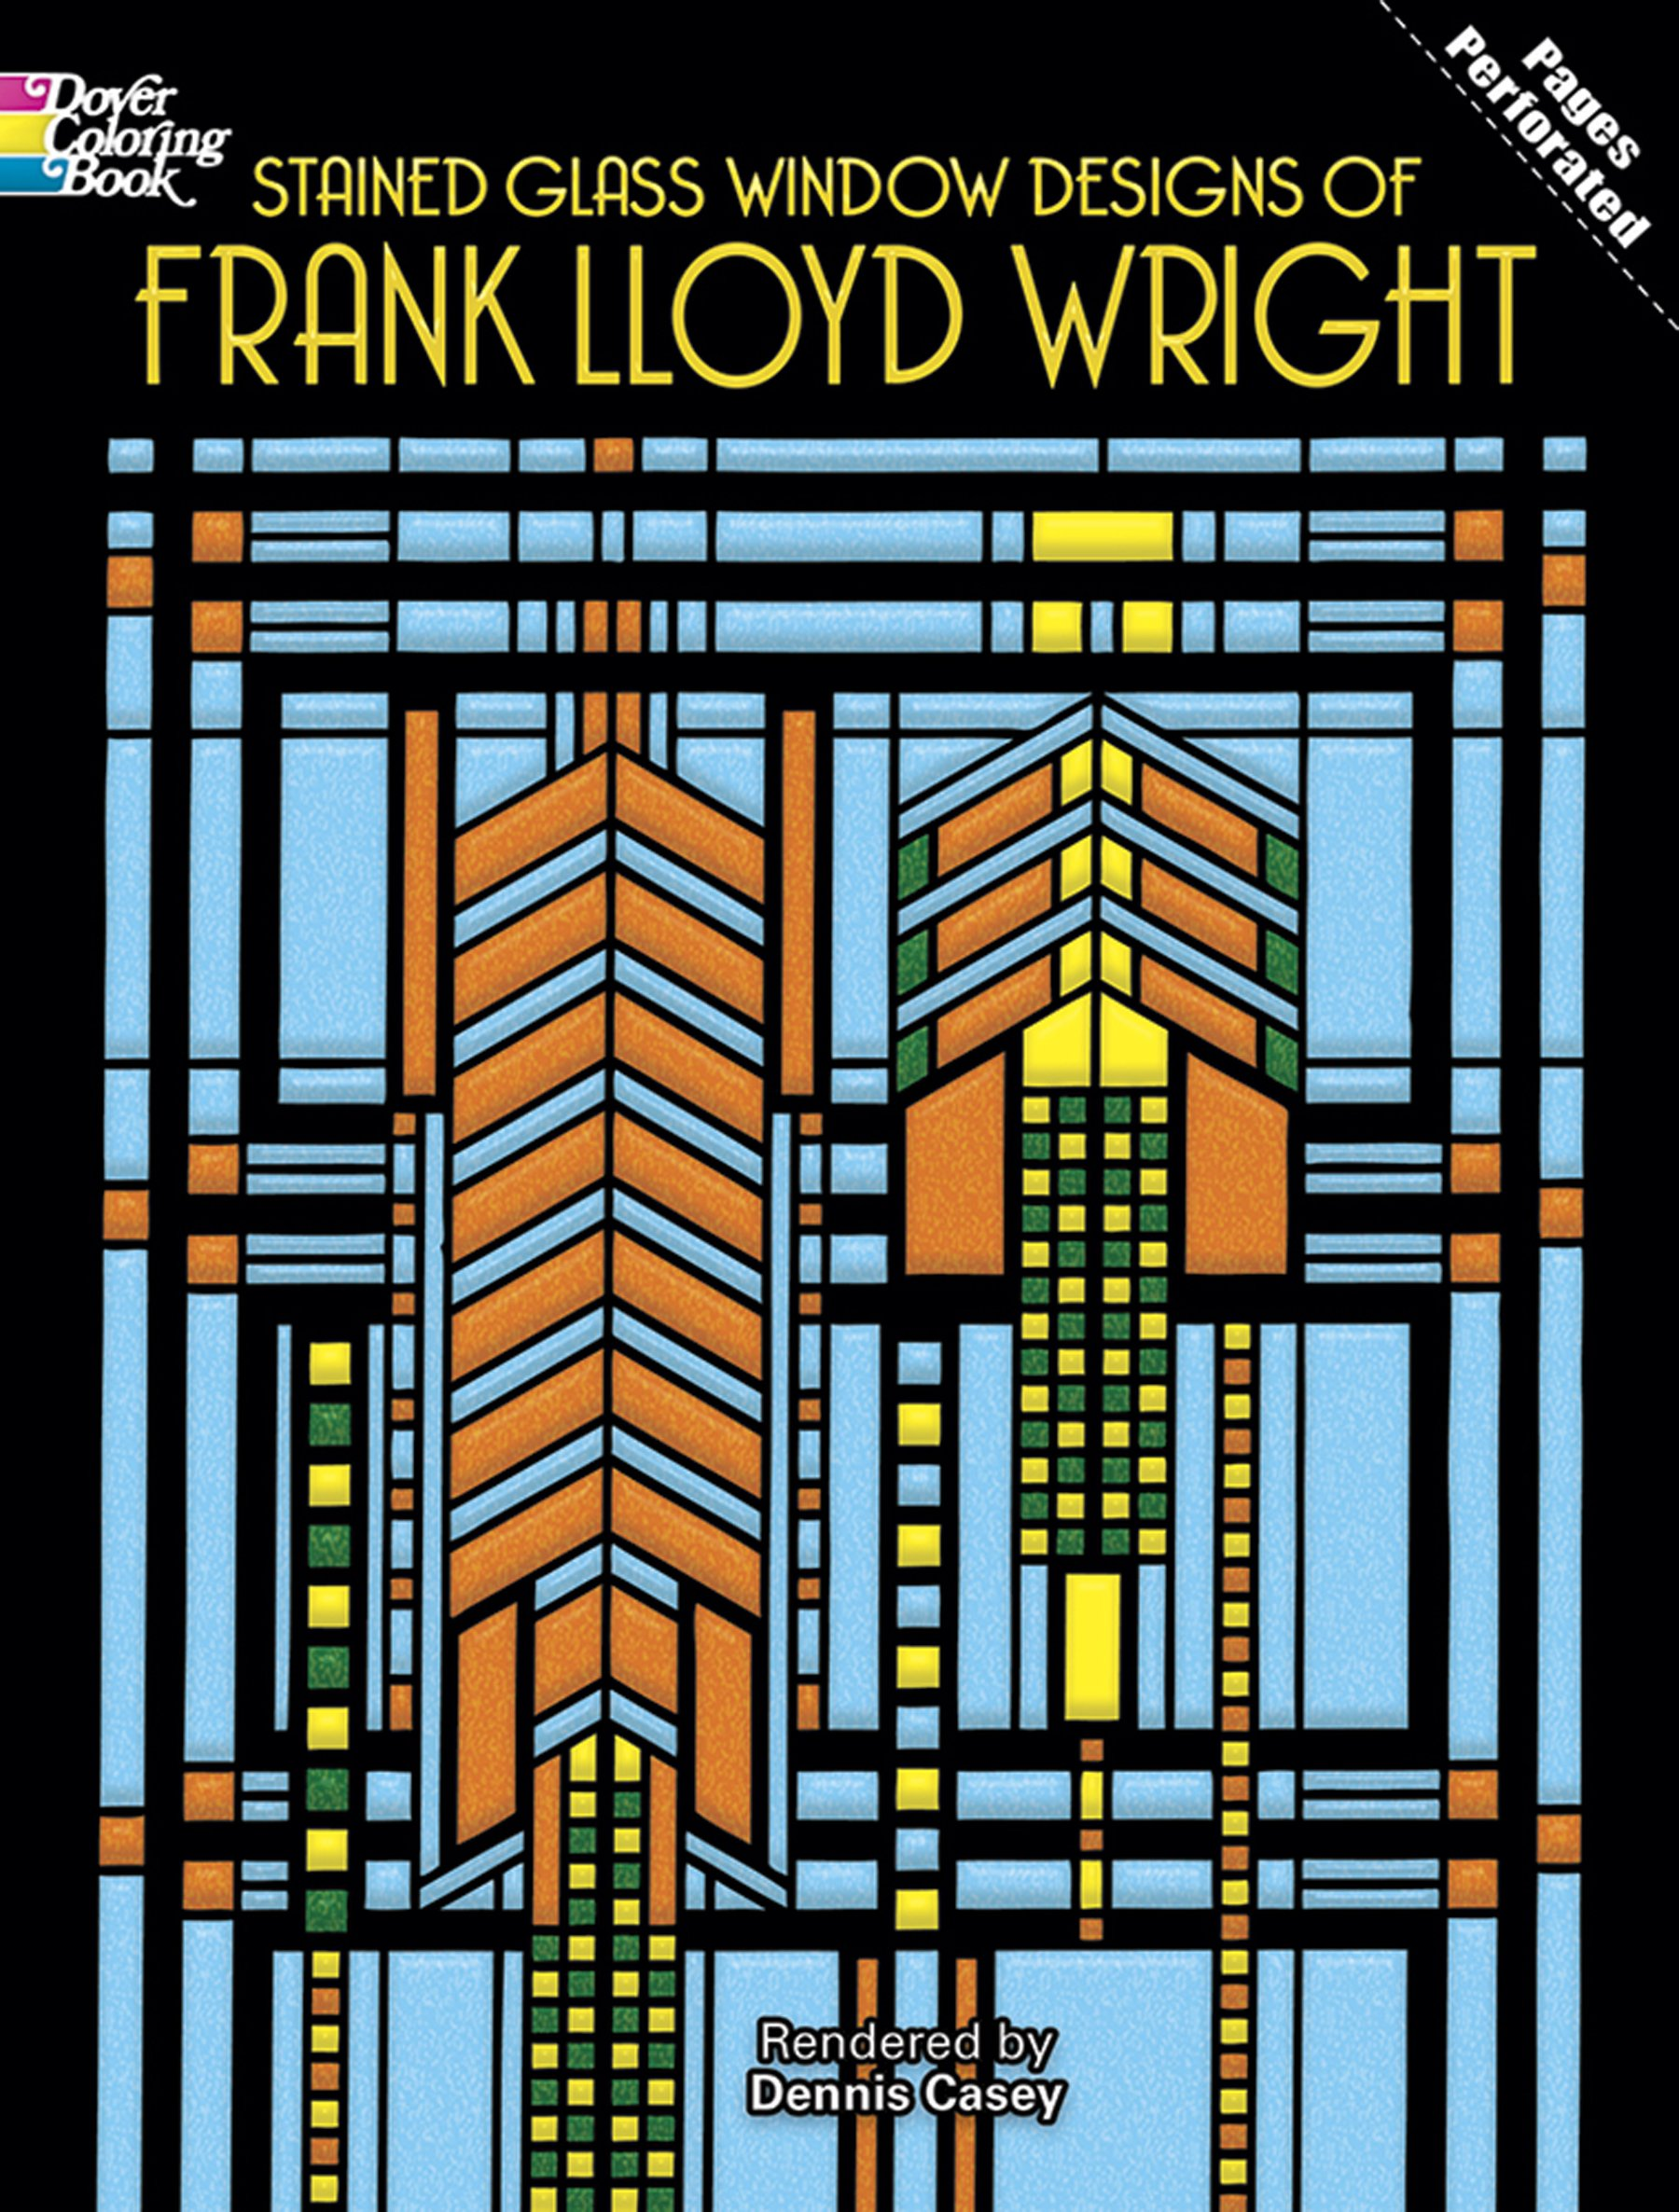 stained glass window ideas double glazing glass stained glass window designs of frank lloyd wright dover design coloring book dennis casey 9780486295169 amazoncom books